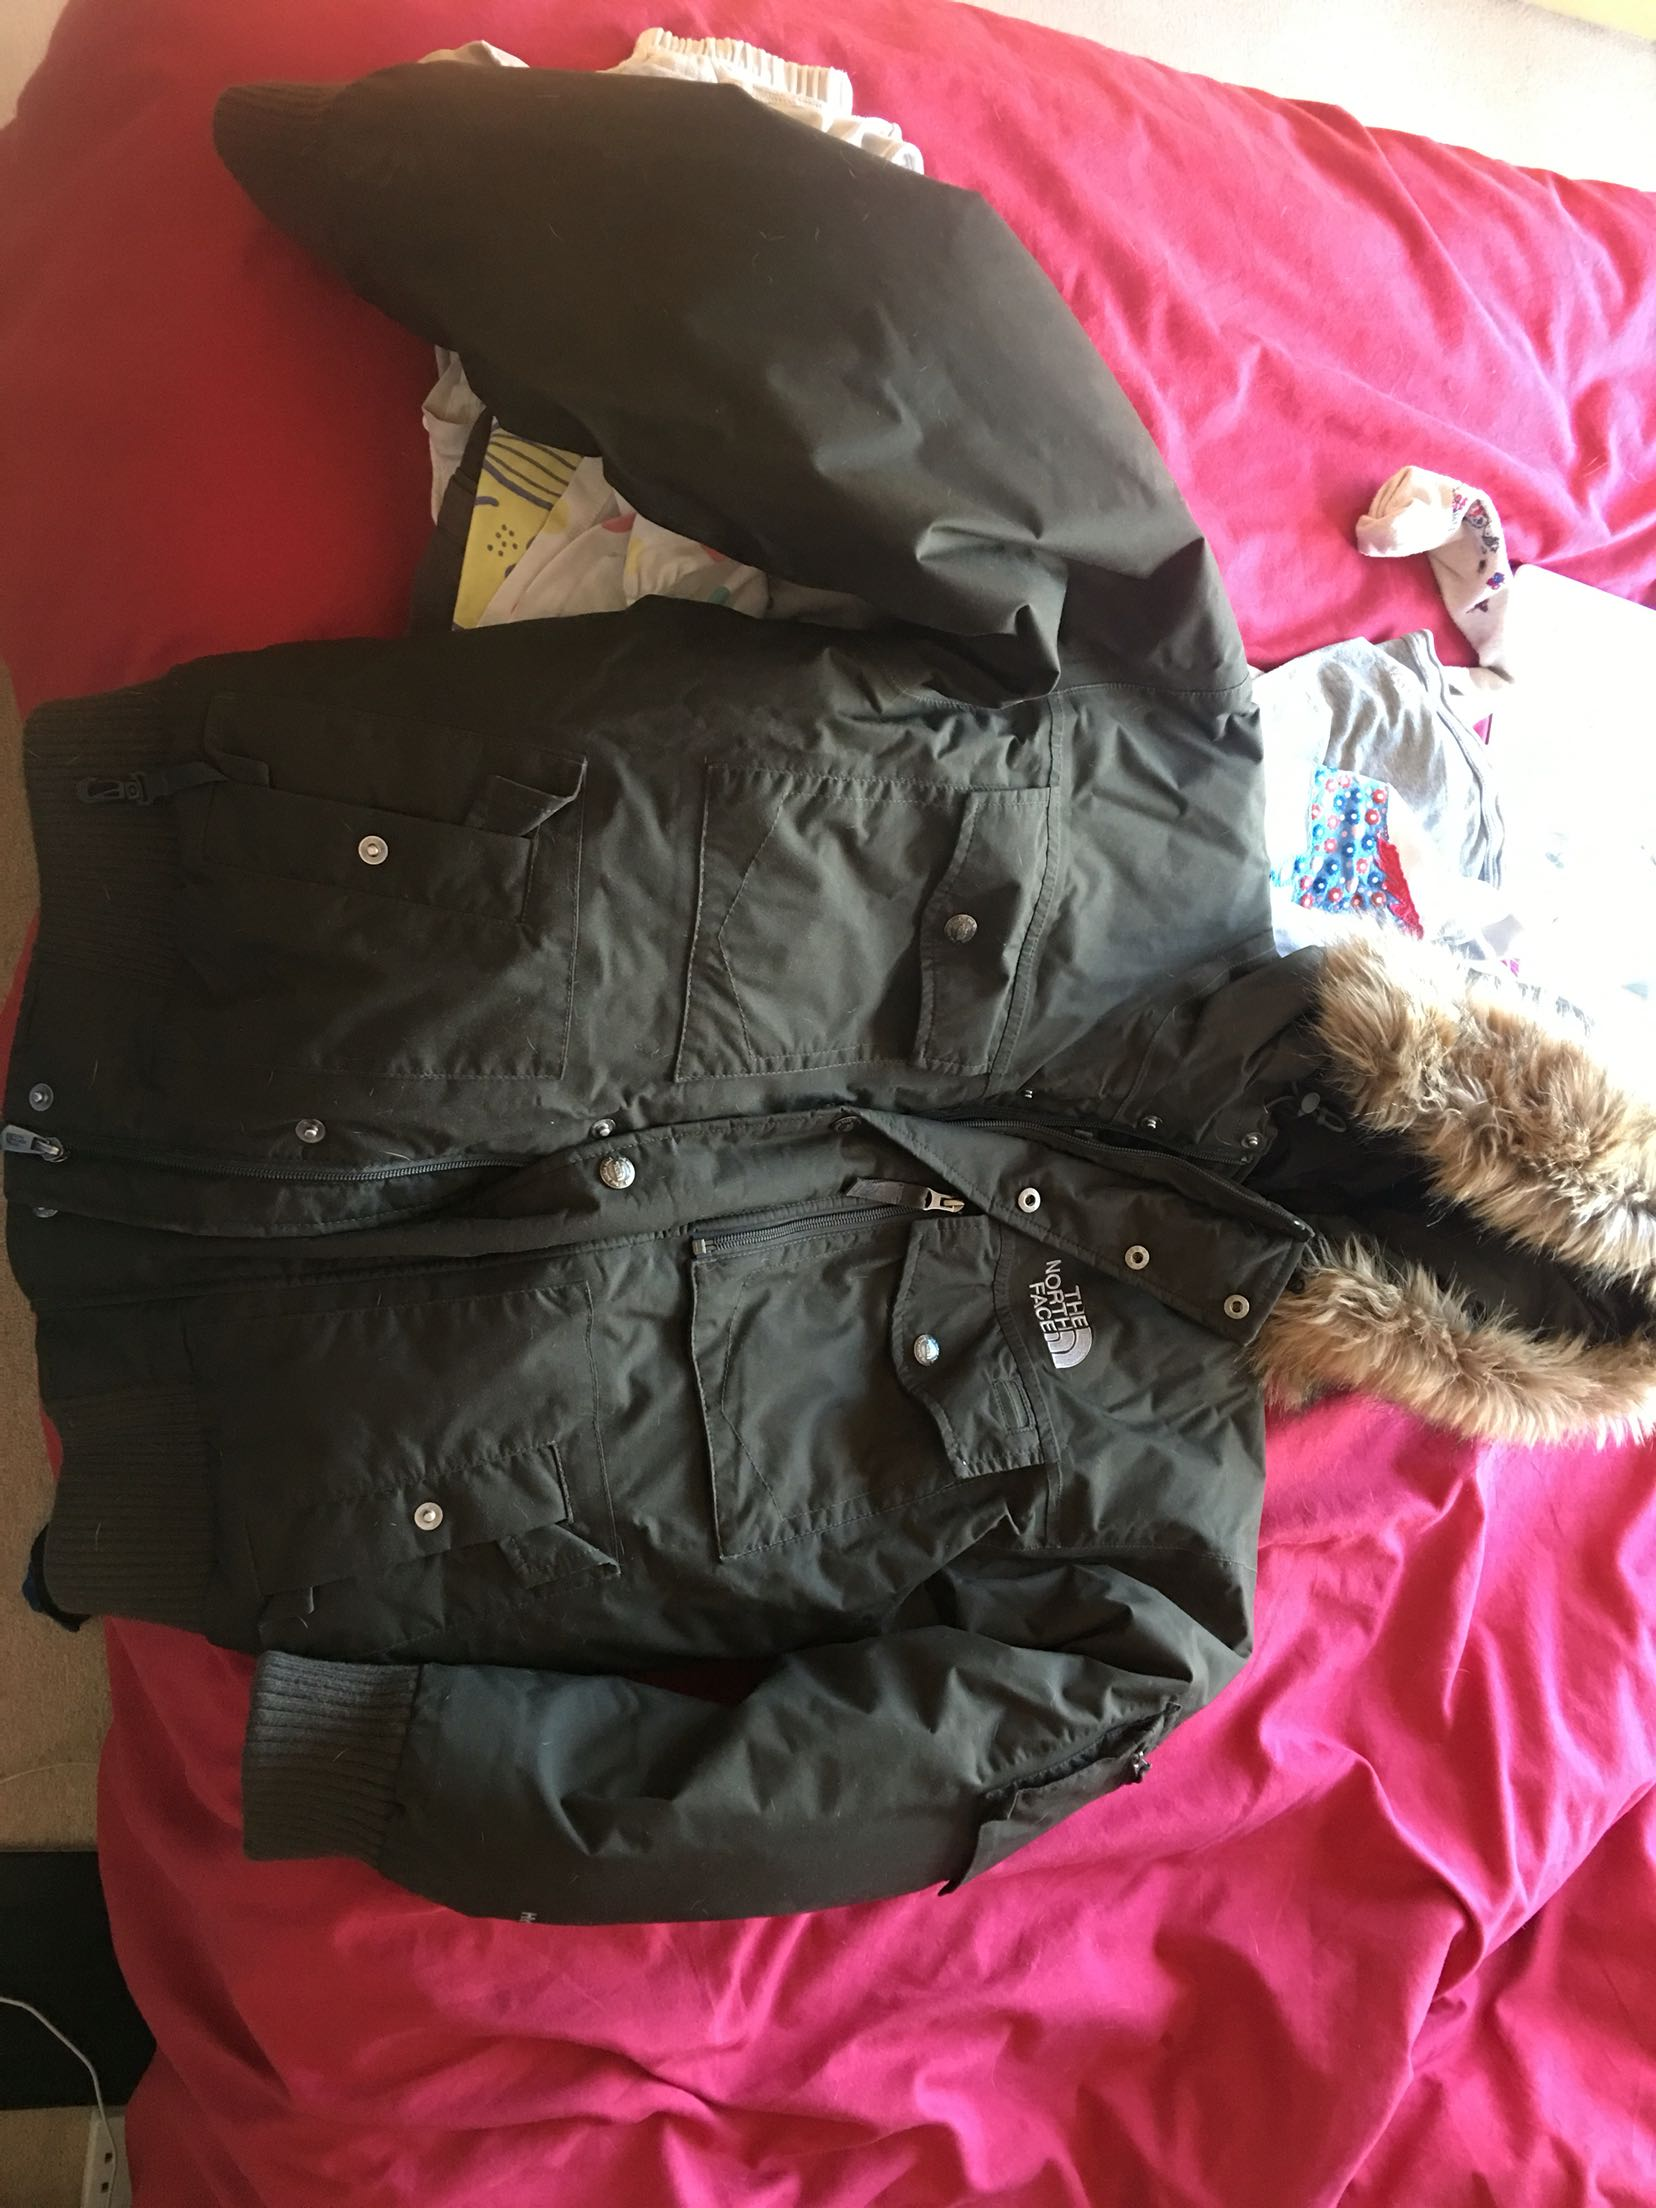 Get amazing deals on Mens light down jacket at GearTrade. Buy and sell new & used mens down winter jackets & outdoor gear from North Face, Burton & Patagonia.